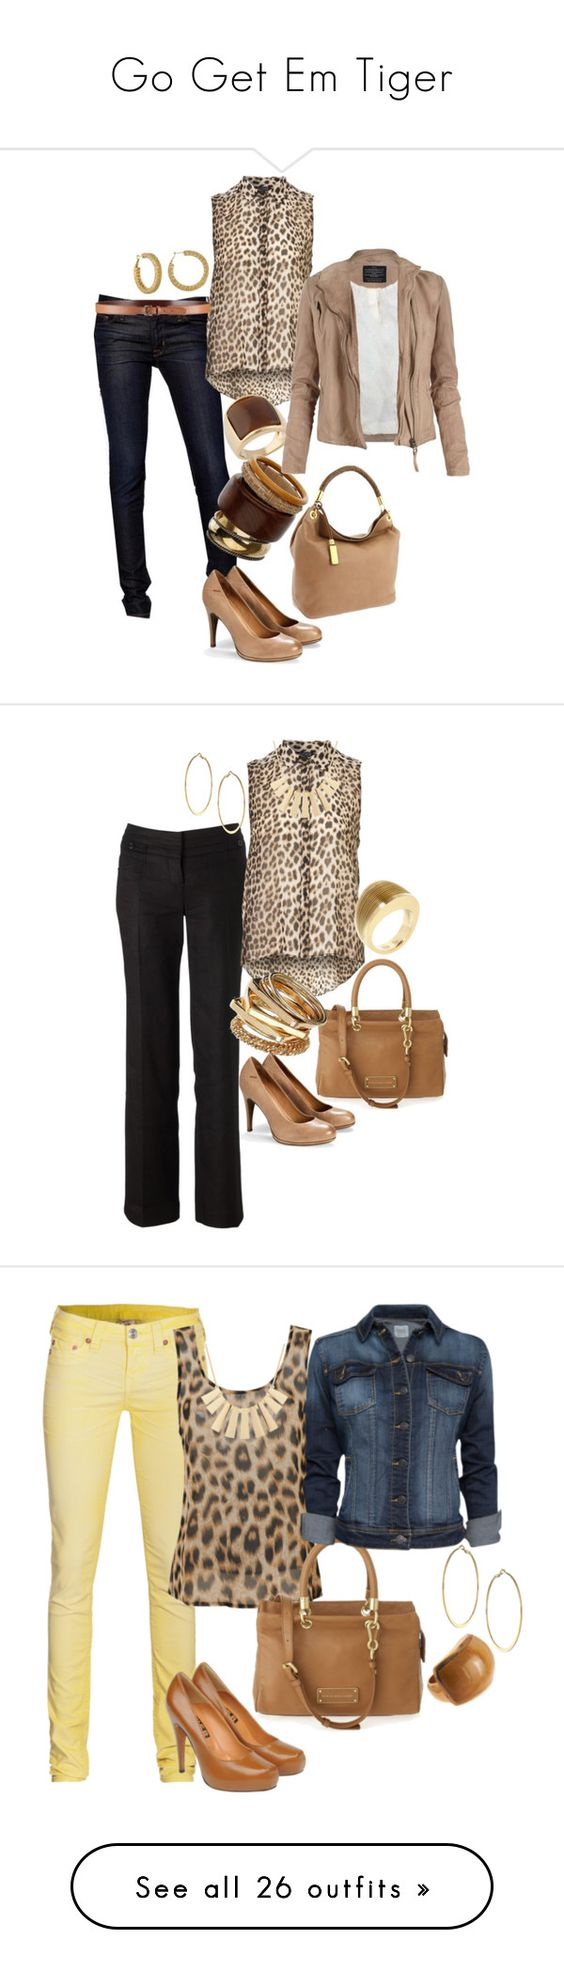 """""""Go Get Em Tiger"""" by chanelsaliah ❤ liked on Polyvore featuring Hudson Jeans, Mexx, ALDO, Dorothy Perkins, Michael Kors, AllSaints, women's clothing, women, female and woman:"""